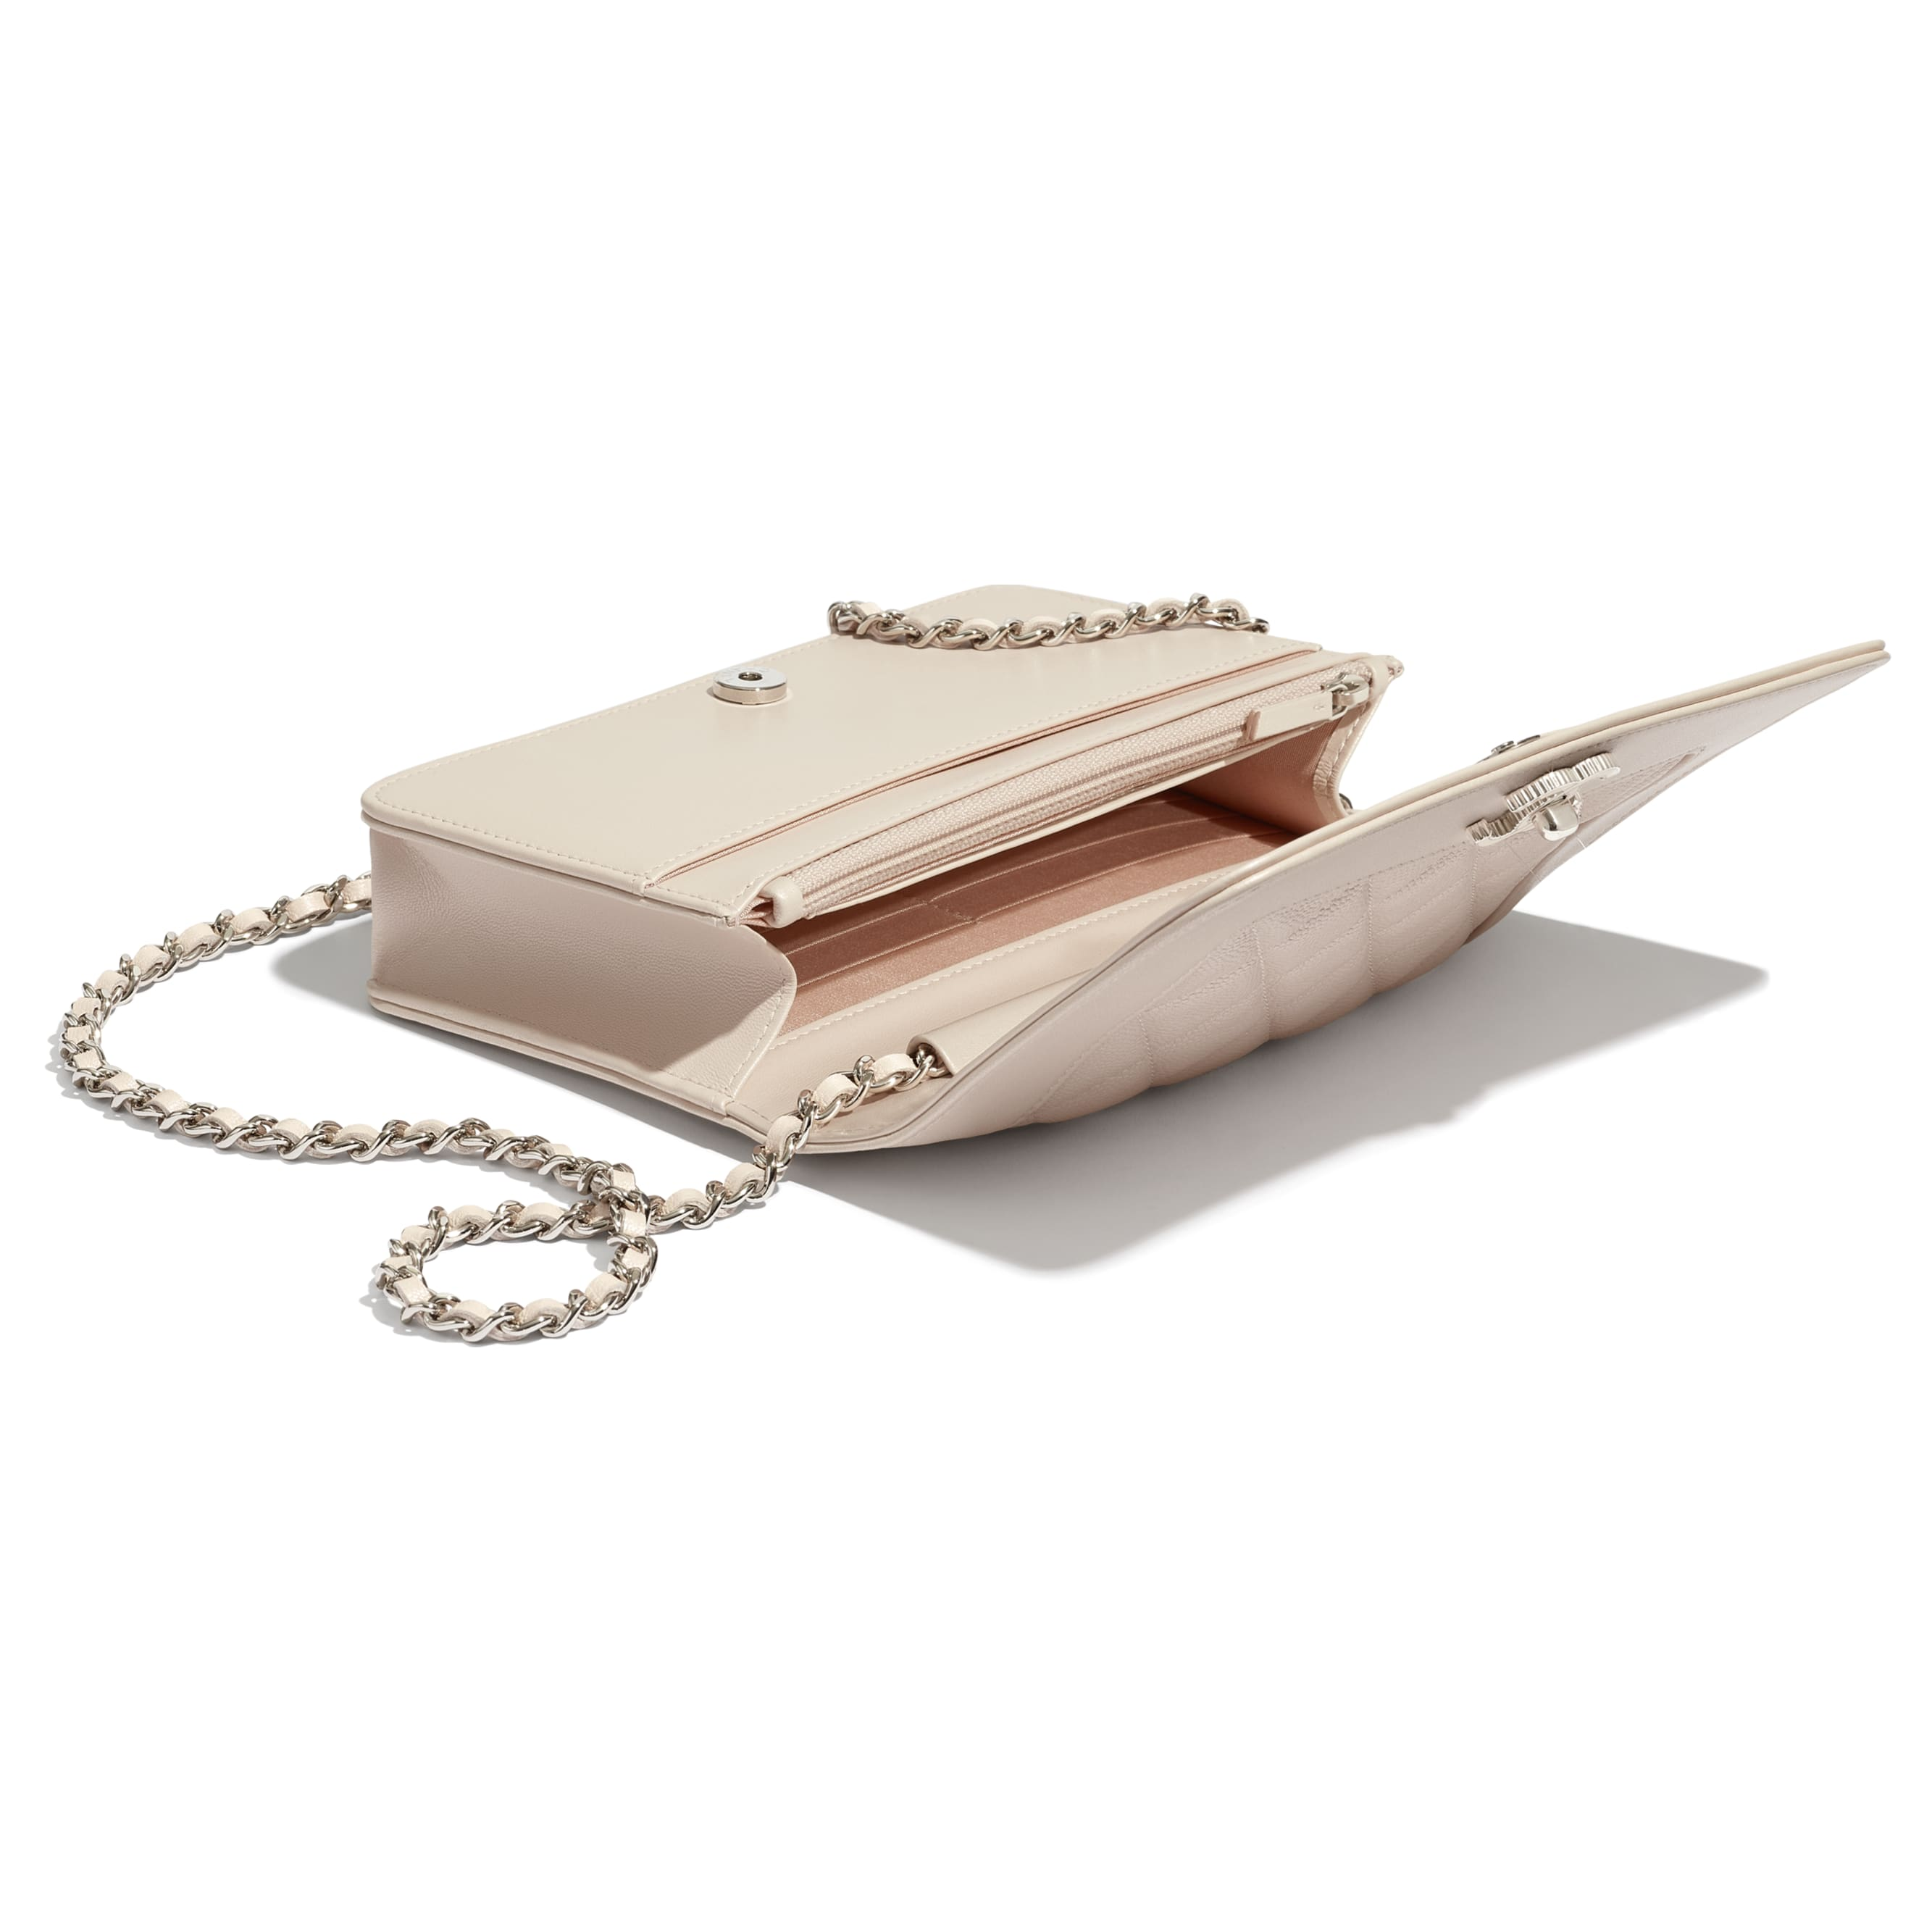 Wallet On Chain - Beige - Grained Calfskin, Calfskin & Silver-Tone Metal - CHANEL - Extra view - see standard sized version